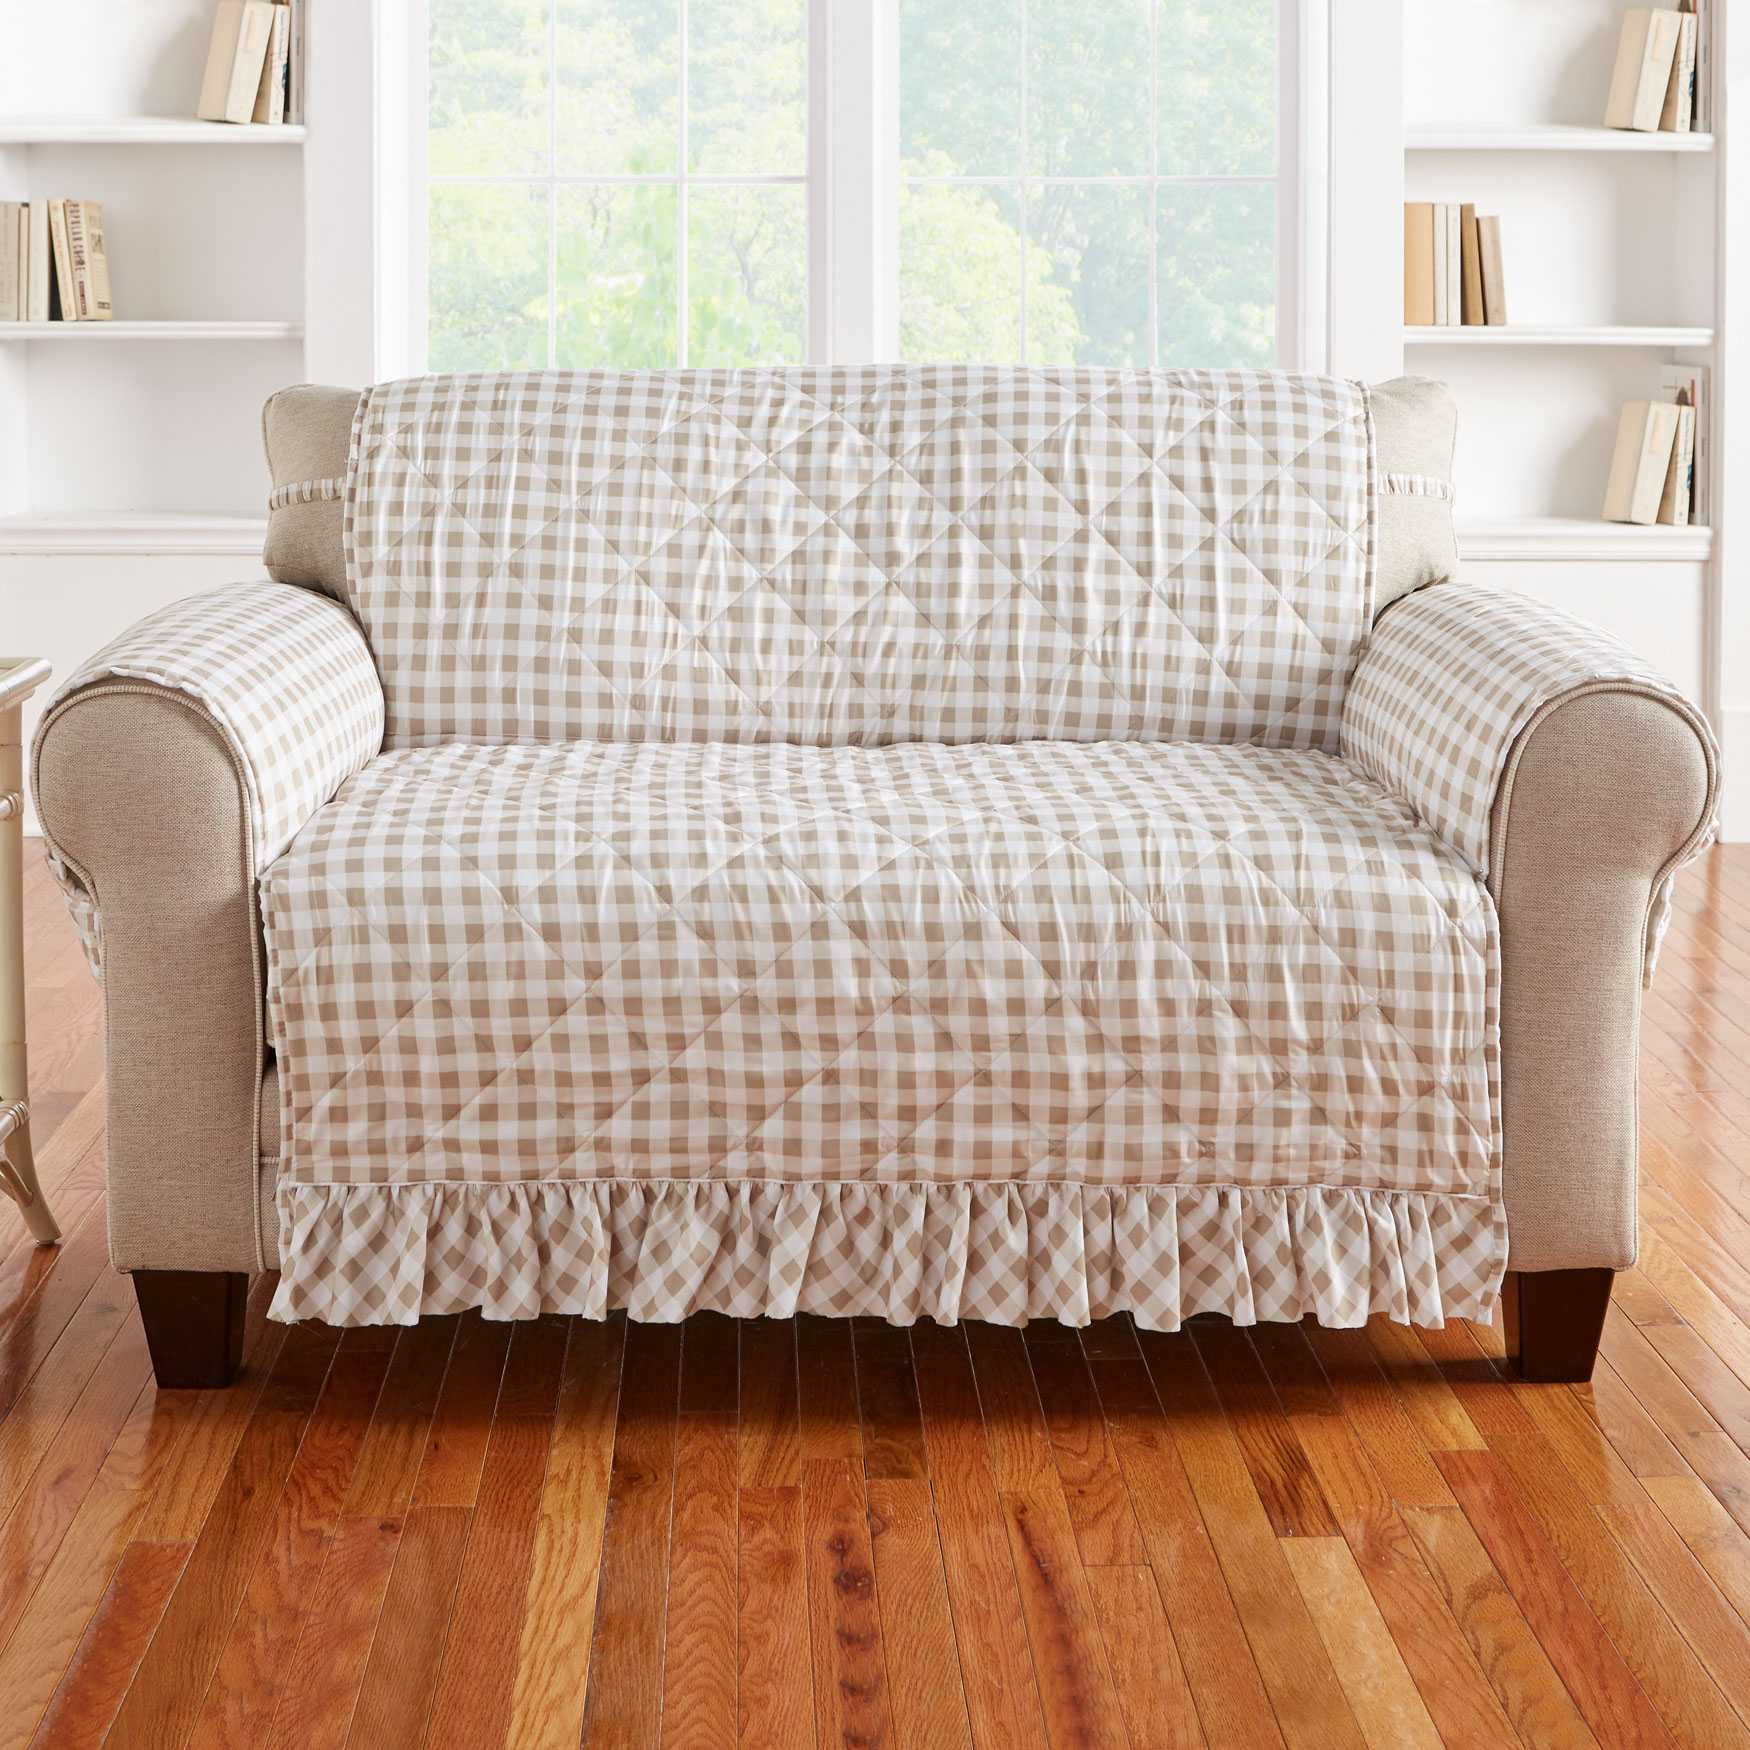 Gingham Ruffled Waterproof Microfiber Loveseat Protector,